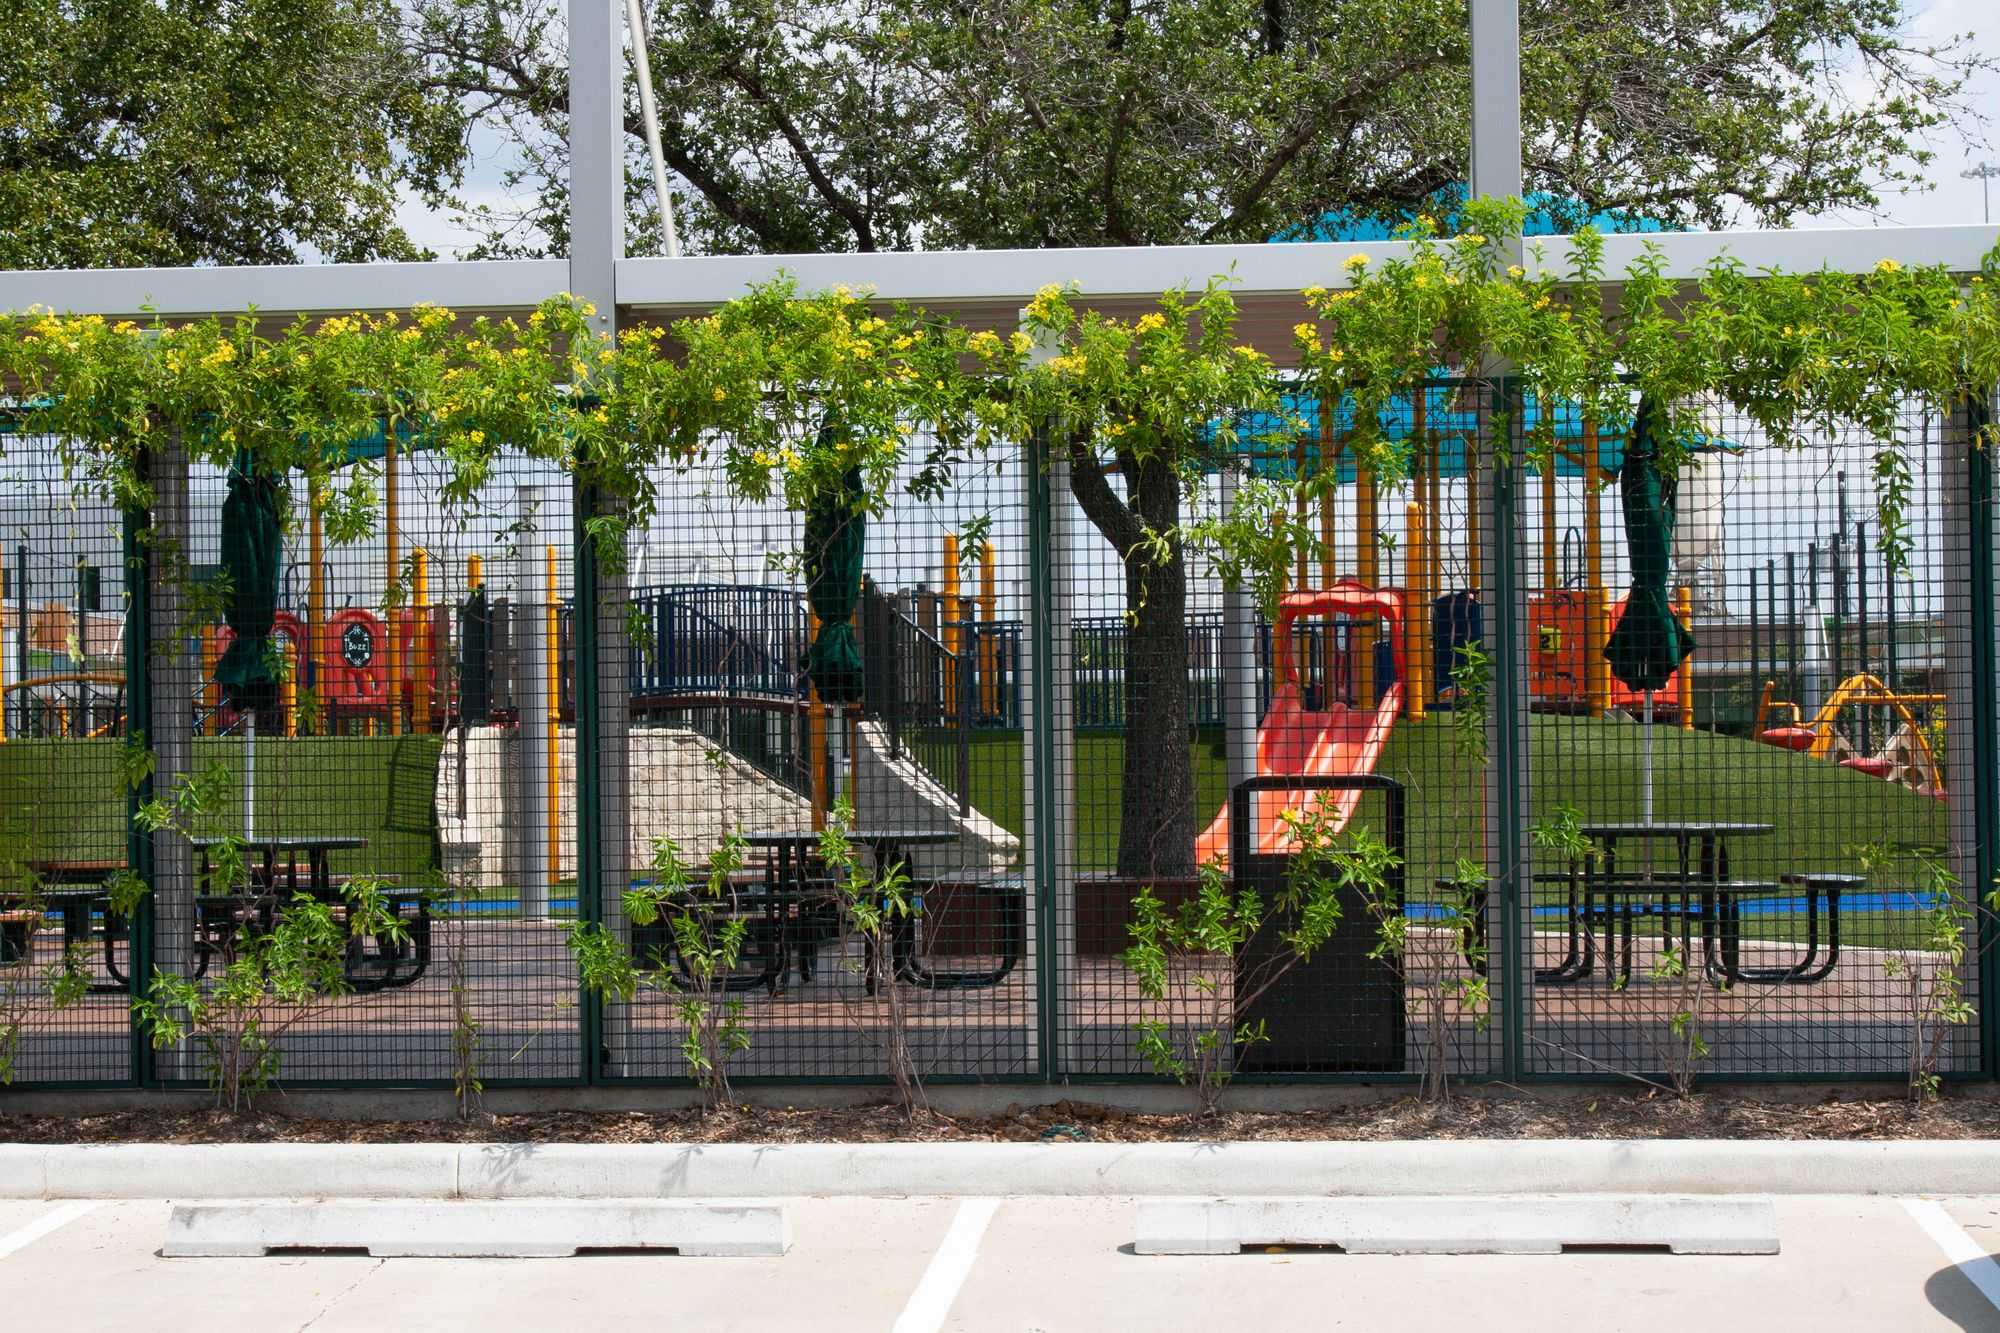 The Awty International School in Houston utilizing ECO-MESH panels to create an appealing-looking fence